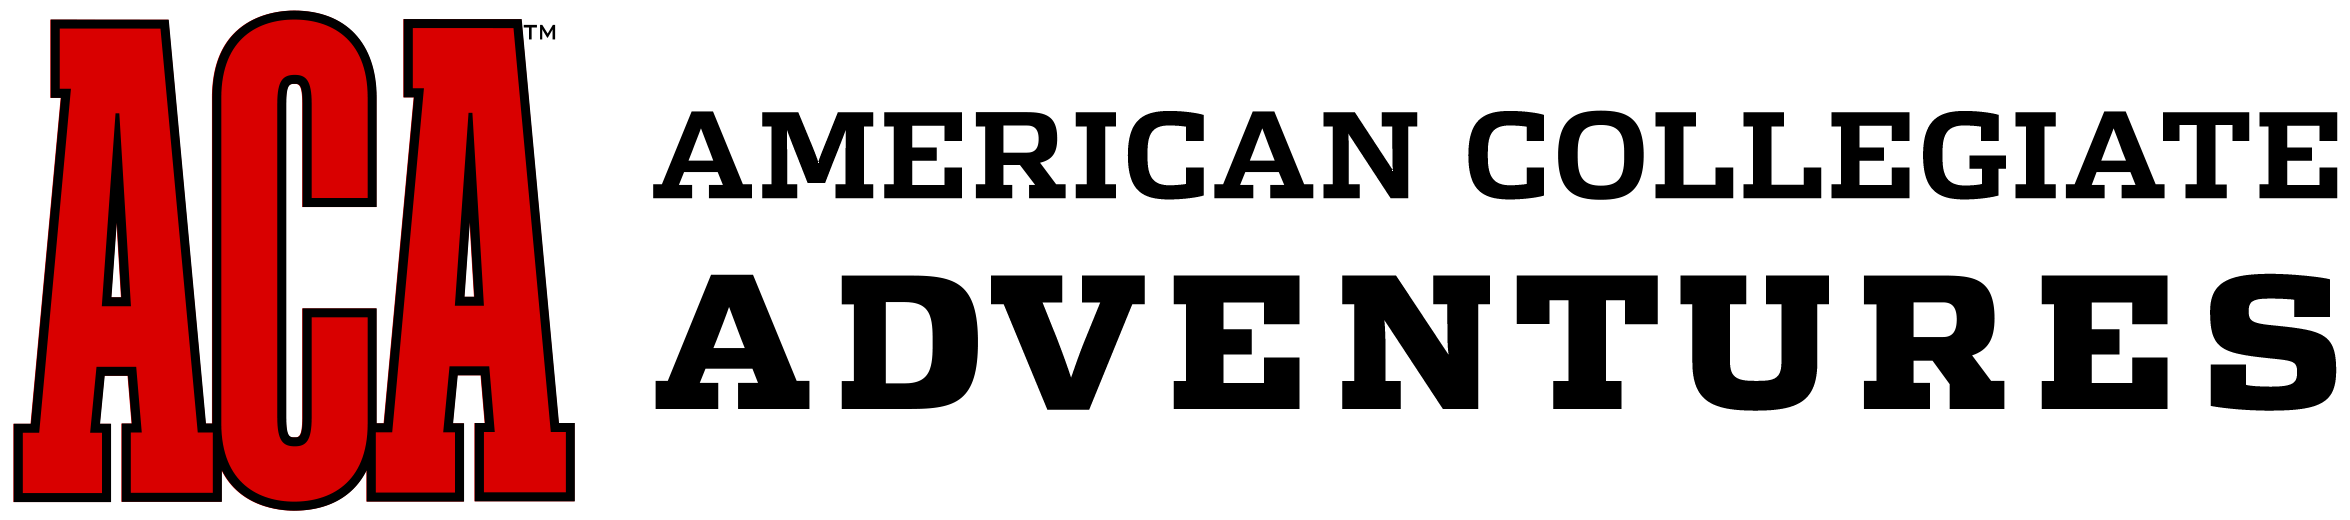 American Collegiate Adventures logo